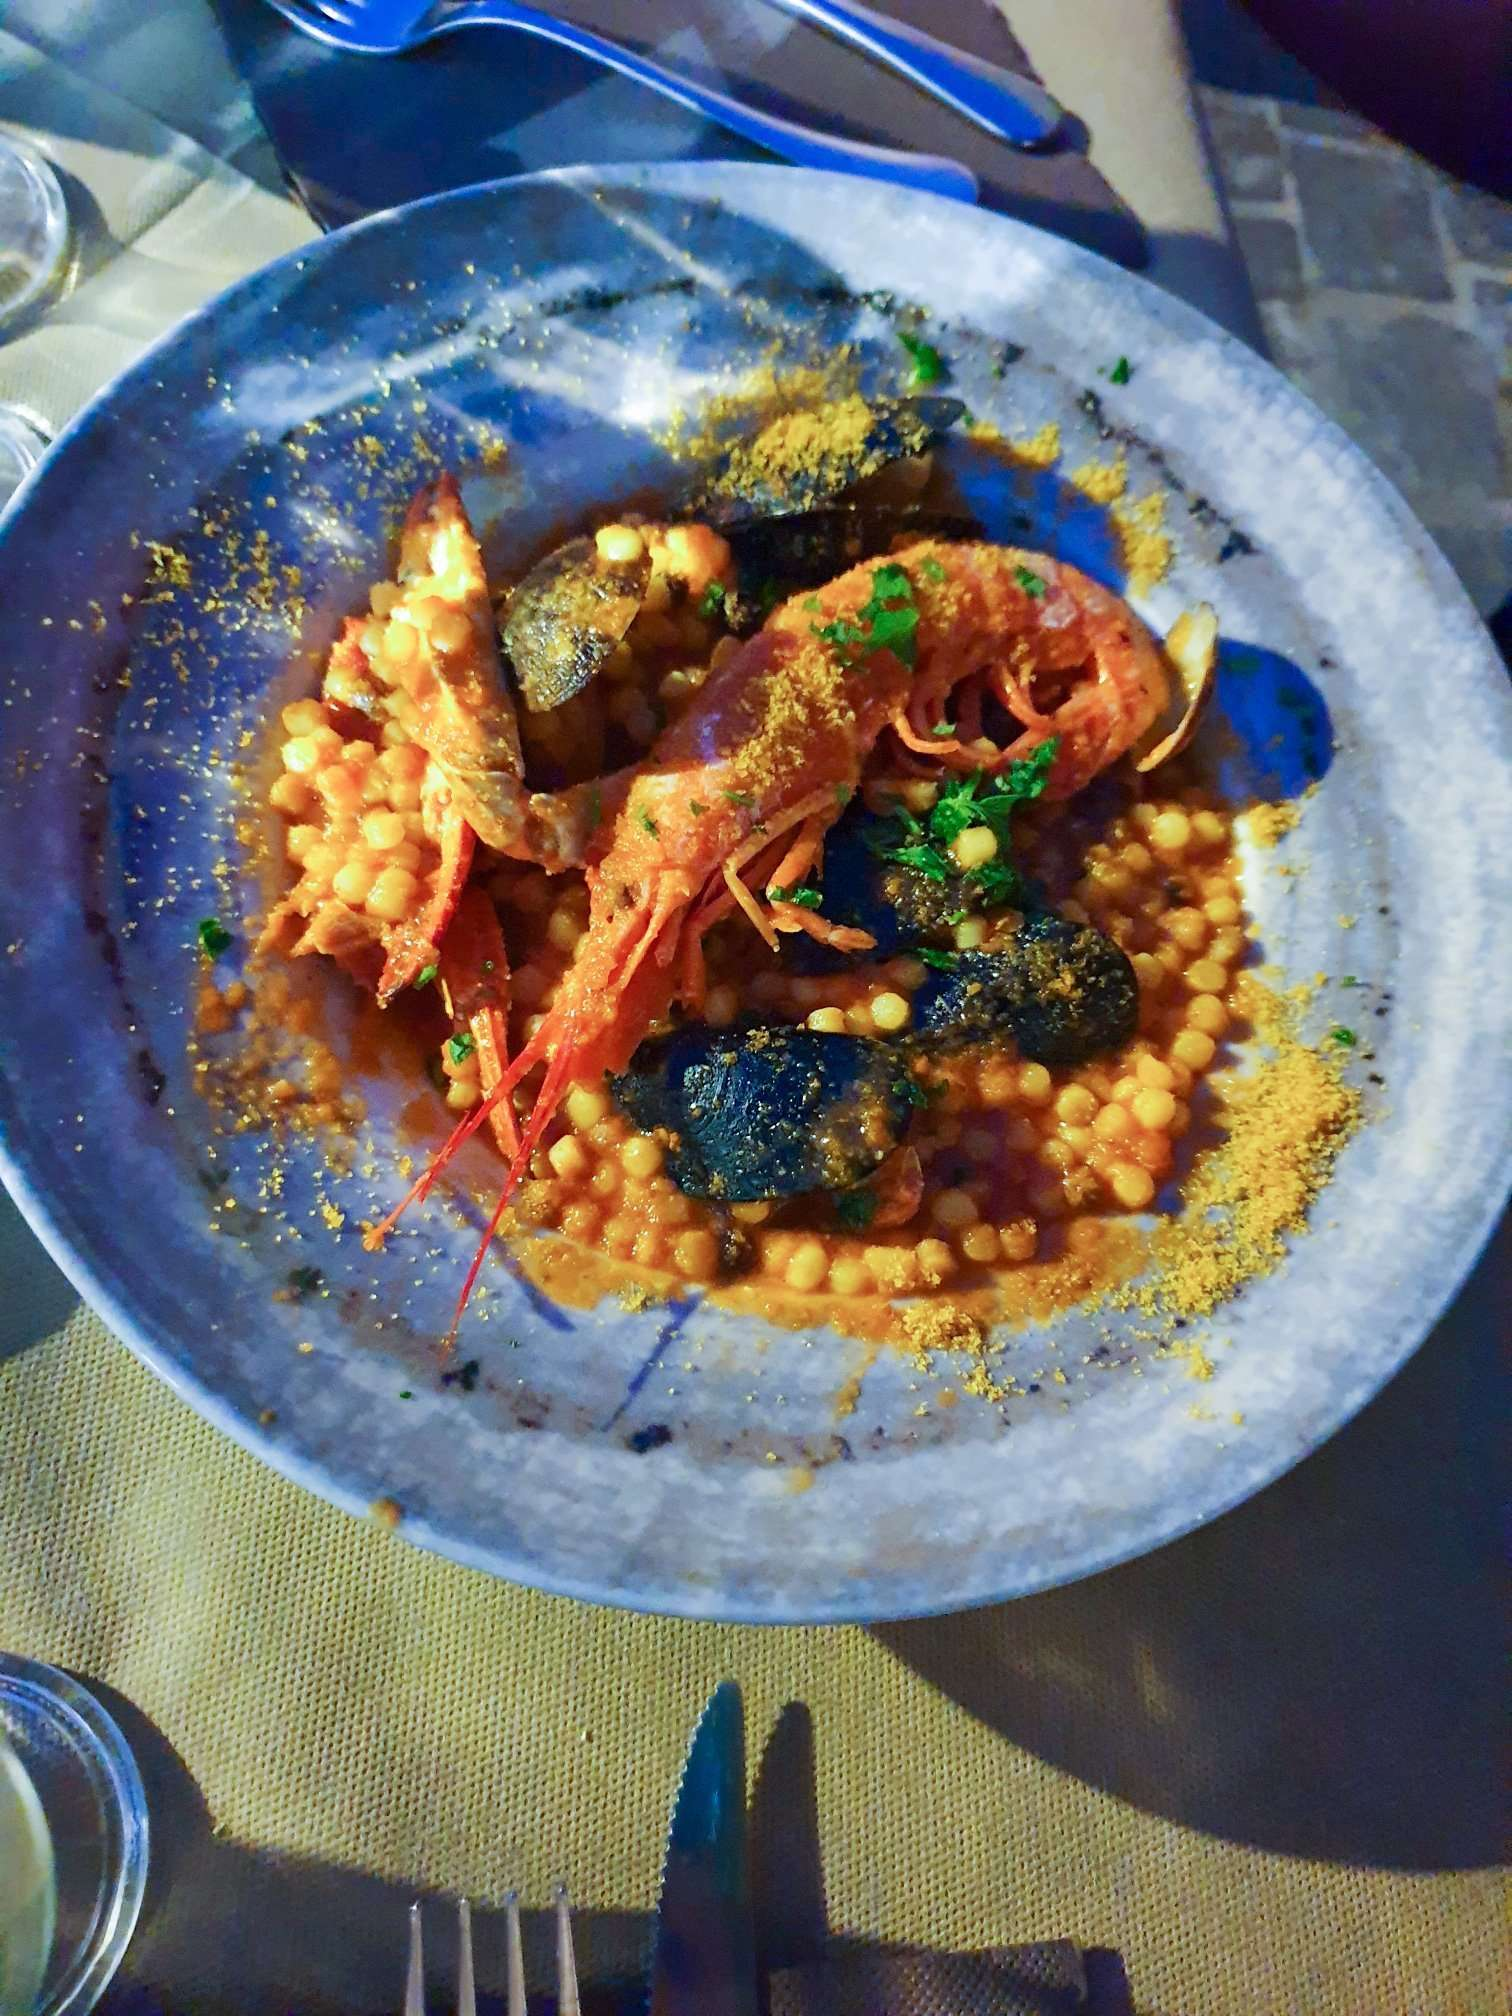 Where to eat fish in Sardinia? We have chosen Sant'Antioco